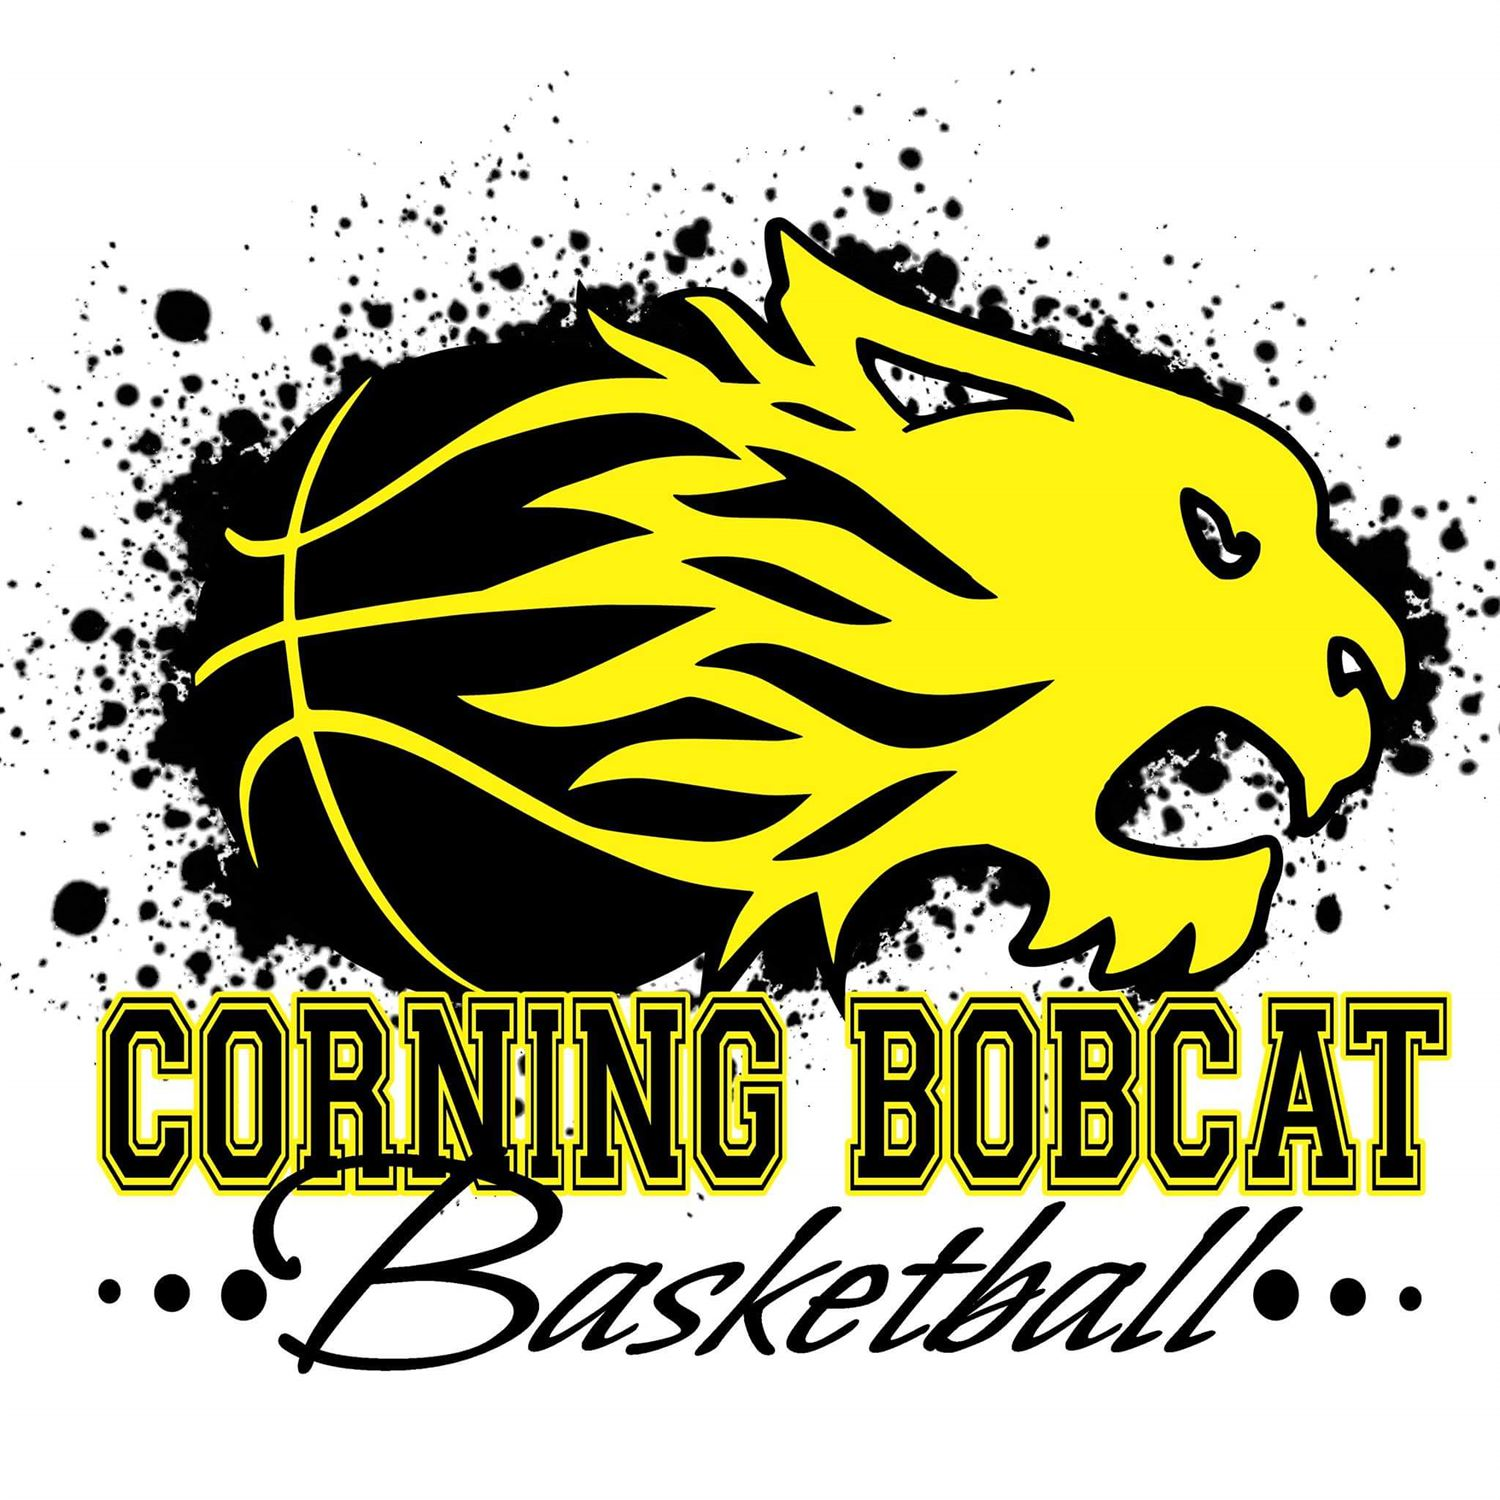 Corning High School - Bobcat Basketball SR